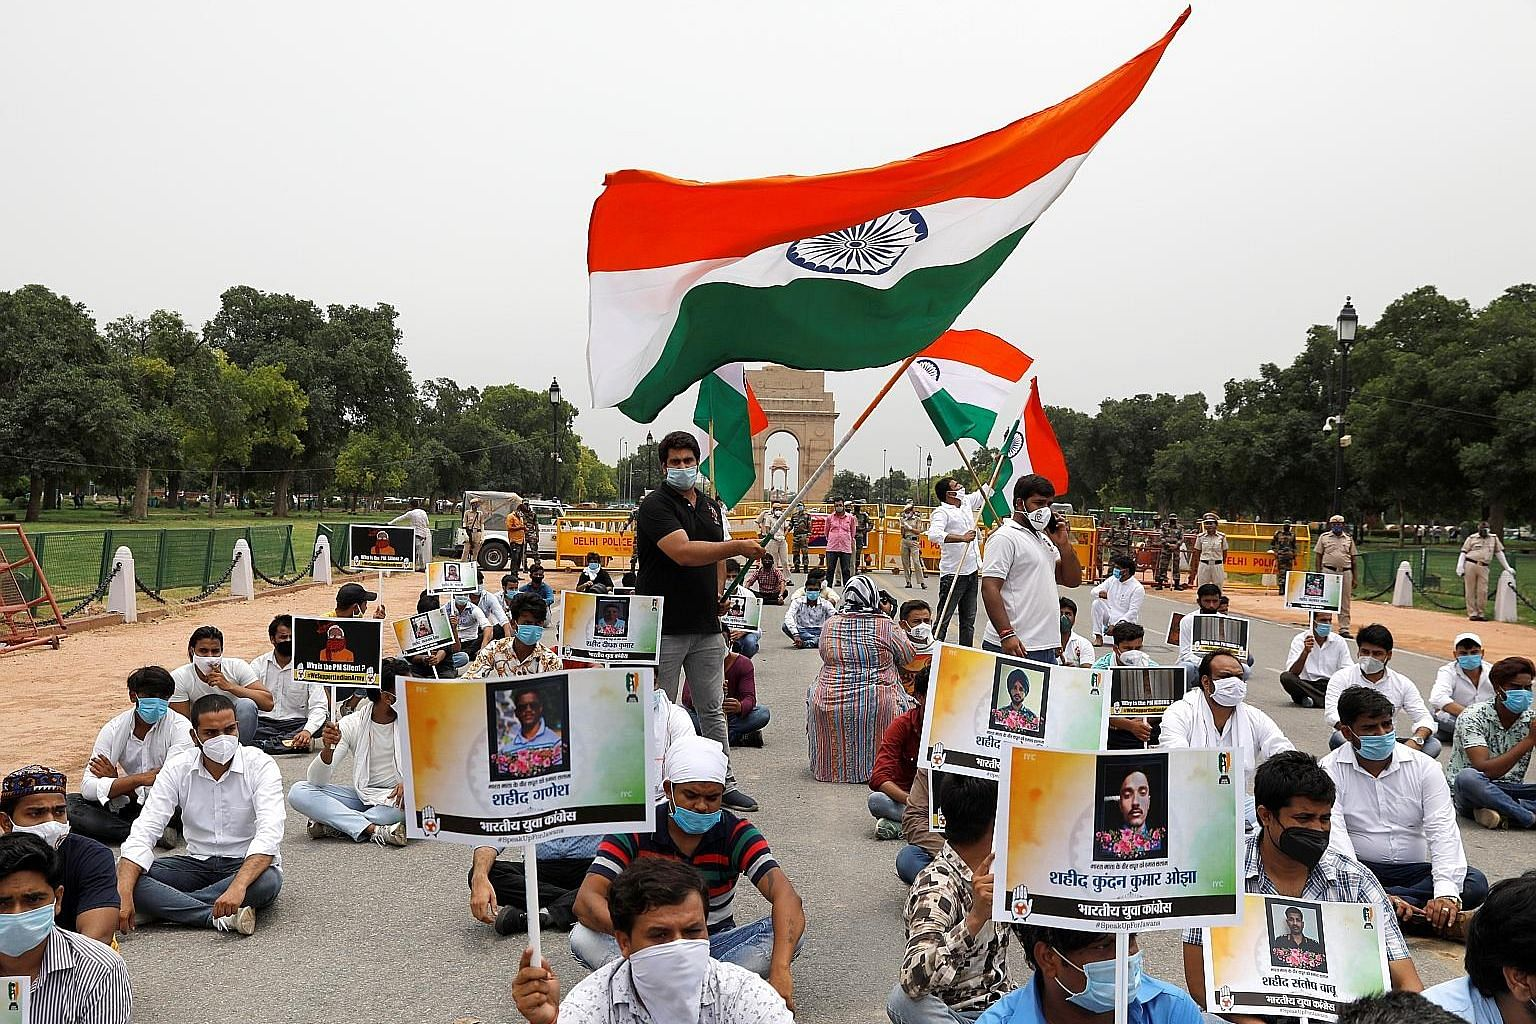 Supporters of India's main opposition Congress party in New Delhi last Friday paying tribute to Indian soldiers killed in the border clash with Chinese troops. The violent clash has seen tensions impact bilateral economic ties.